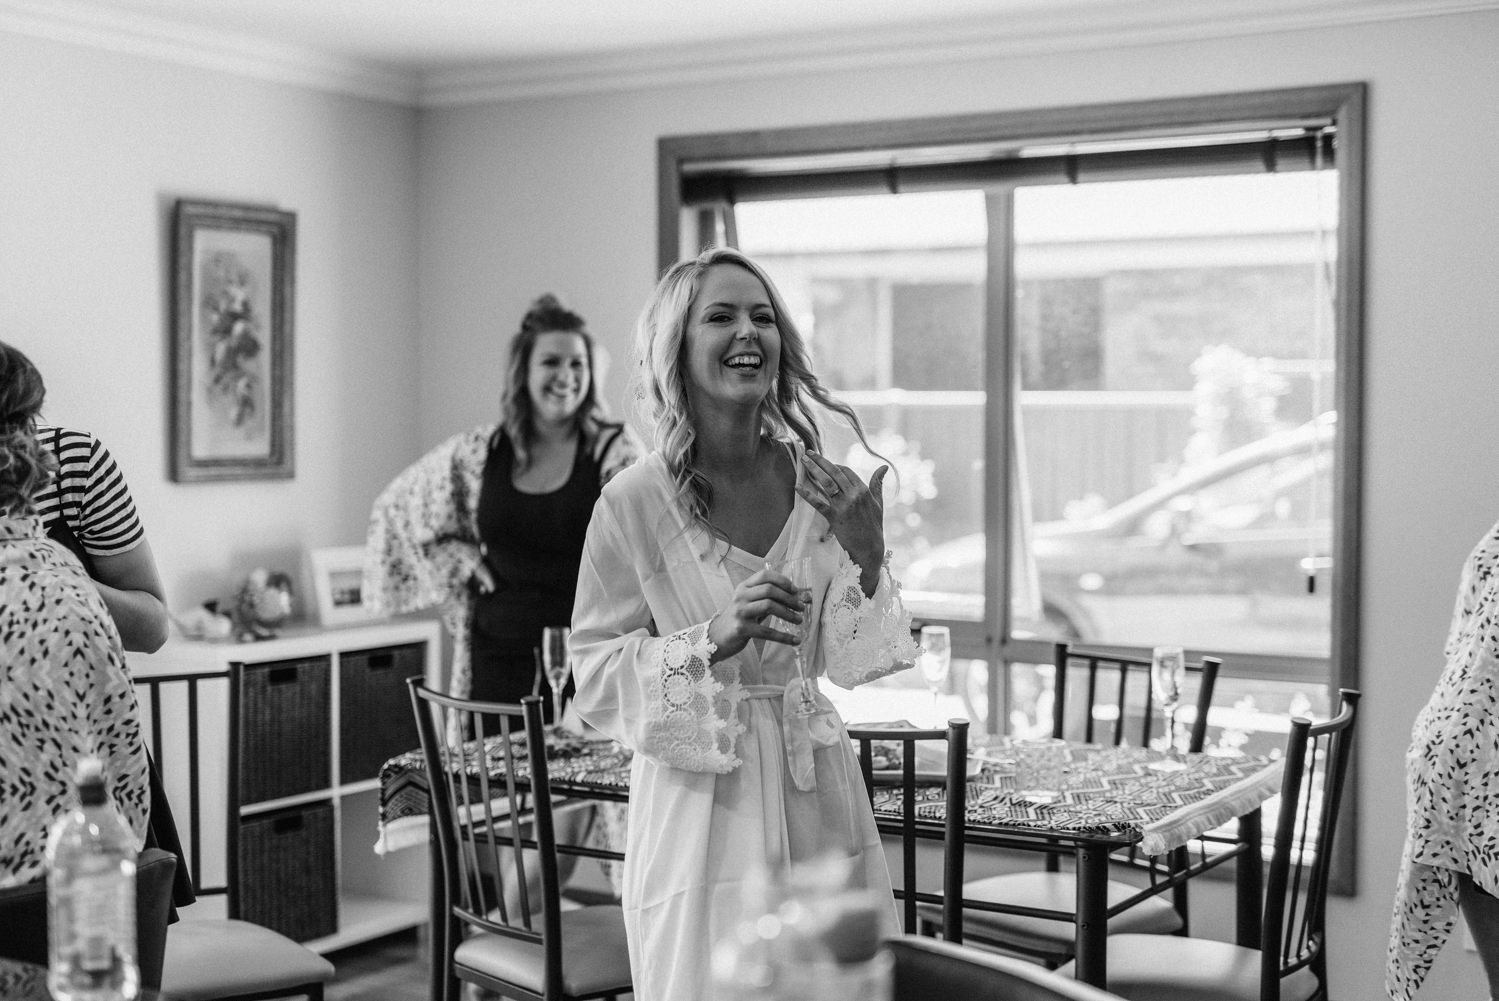 Launceston-Wedding-Photographer-10.jpg